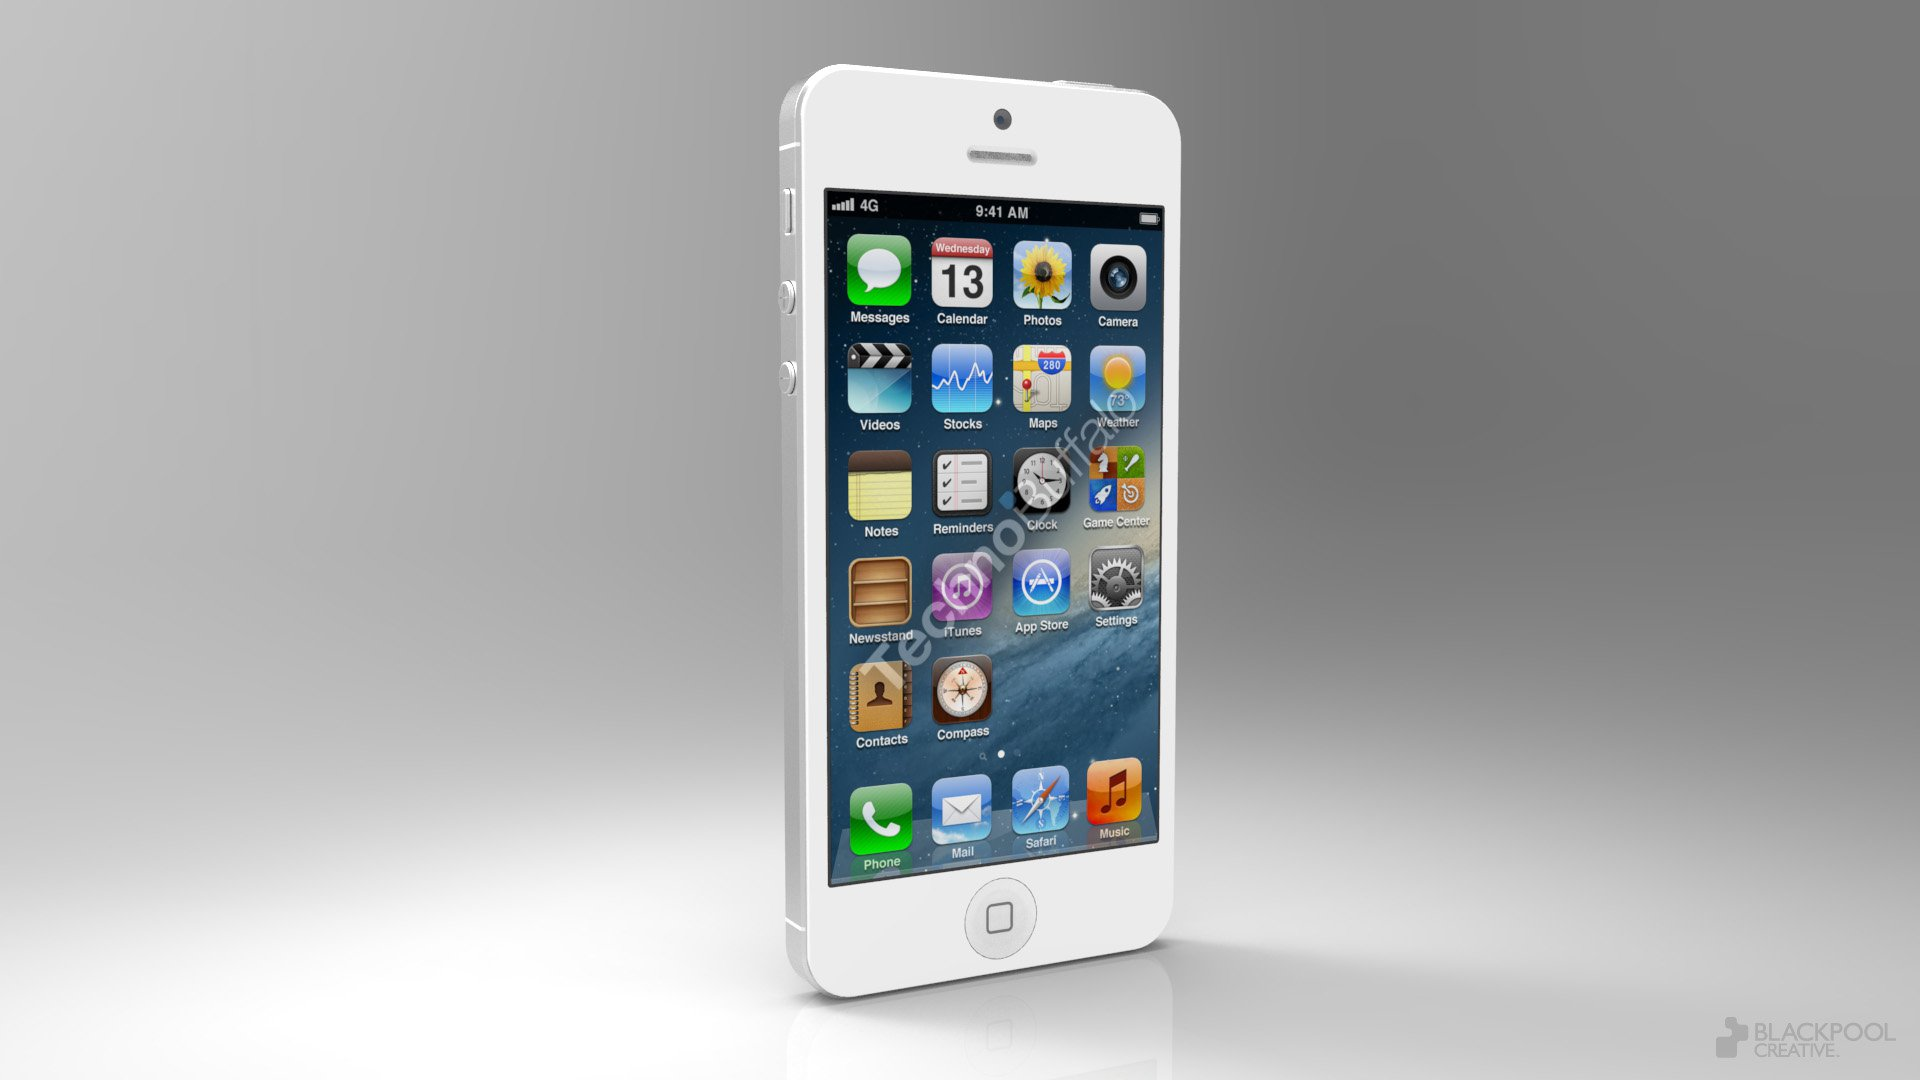 free Apple iPhone 5 hd wallpaper 1920x1080 ImageBankbiz 1920x1080